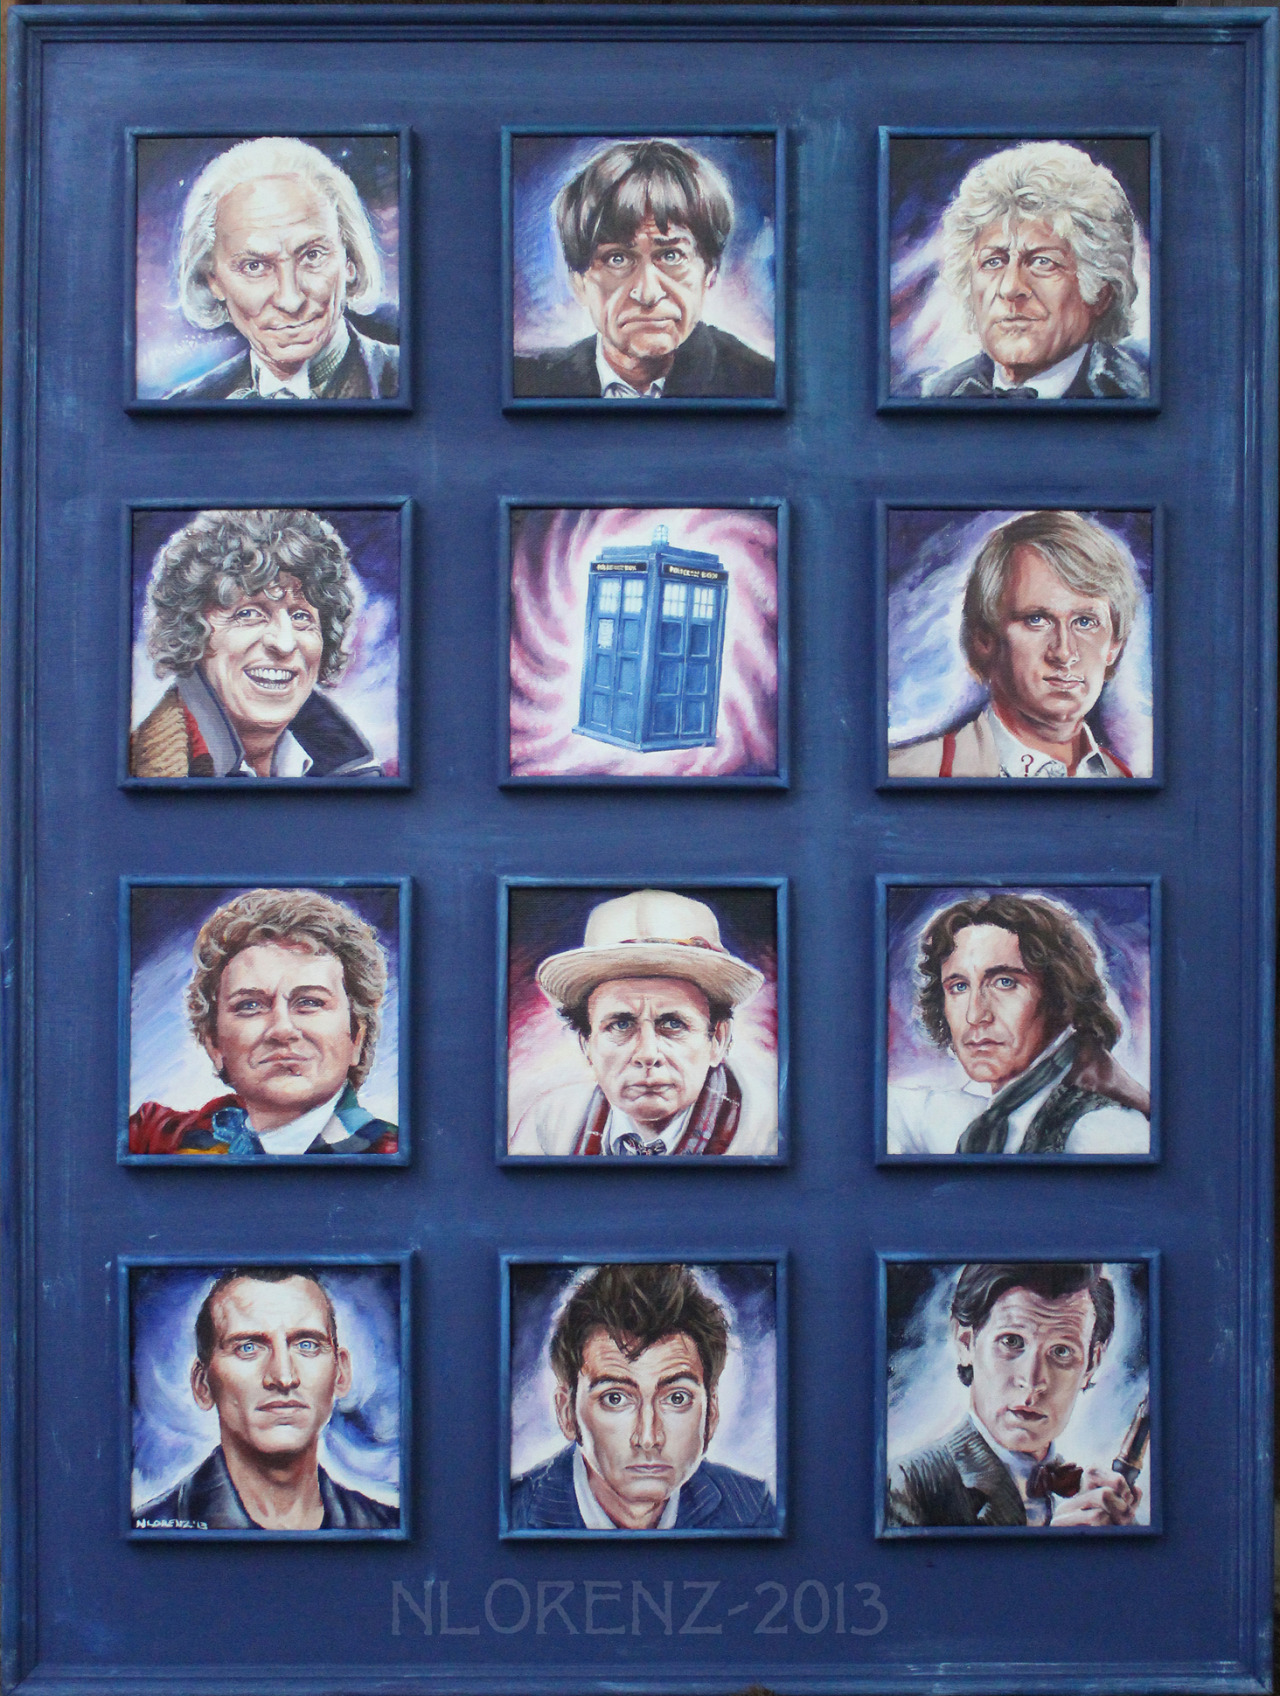 nancylorenz:  The 11 Doctors: 50th Anniversary Tribute to Doctor Who.By Nancy Lorenz. Each small canvas is six inches by six inches.  Acrylic on canvas.  It took three weeks to complete.  Frame built by Peter Lorenz. Detail Below.It would make my millenium if this were reblogged by the official Doctor Who tumblr. Painting this half killed me with the effort.  It's one of the most difficult paintings I have ever done!            I'm going to keep reblogging this until it's reblogged by the official Doctor Who tumblr.  That's all I want, people.  A reblog from them.  Can you help me?  I nearly lost my sanity painting this friggin' thing!!  All I ask is a little nod from the BBC!